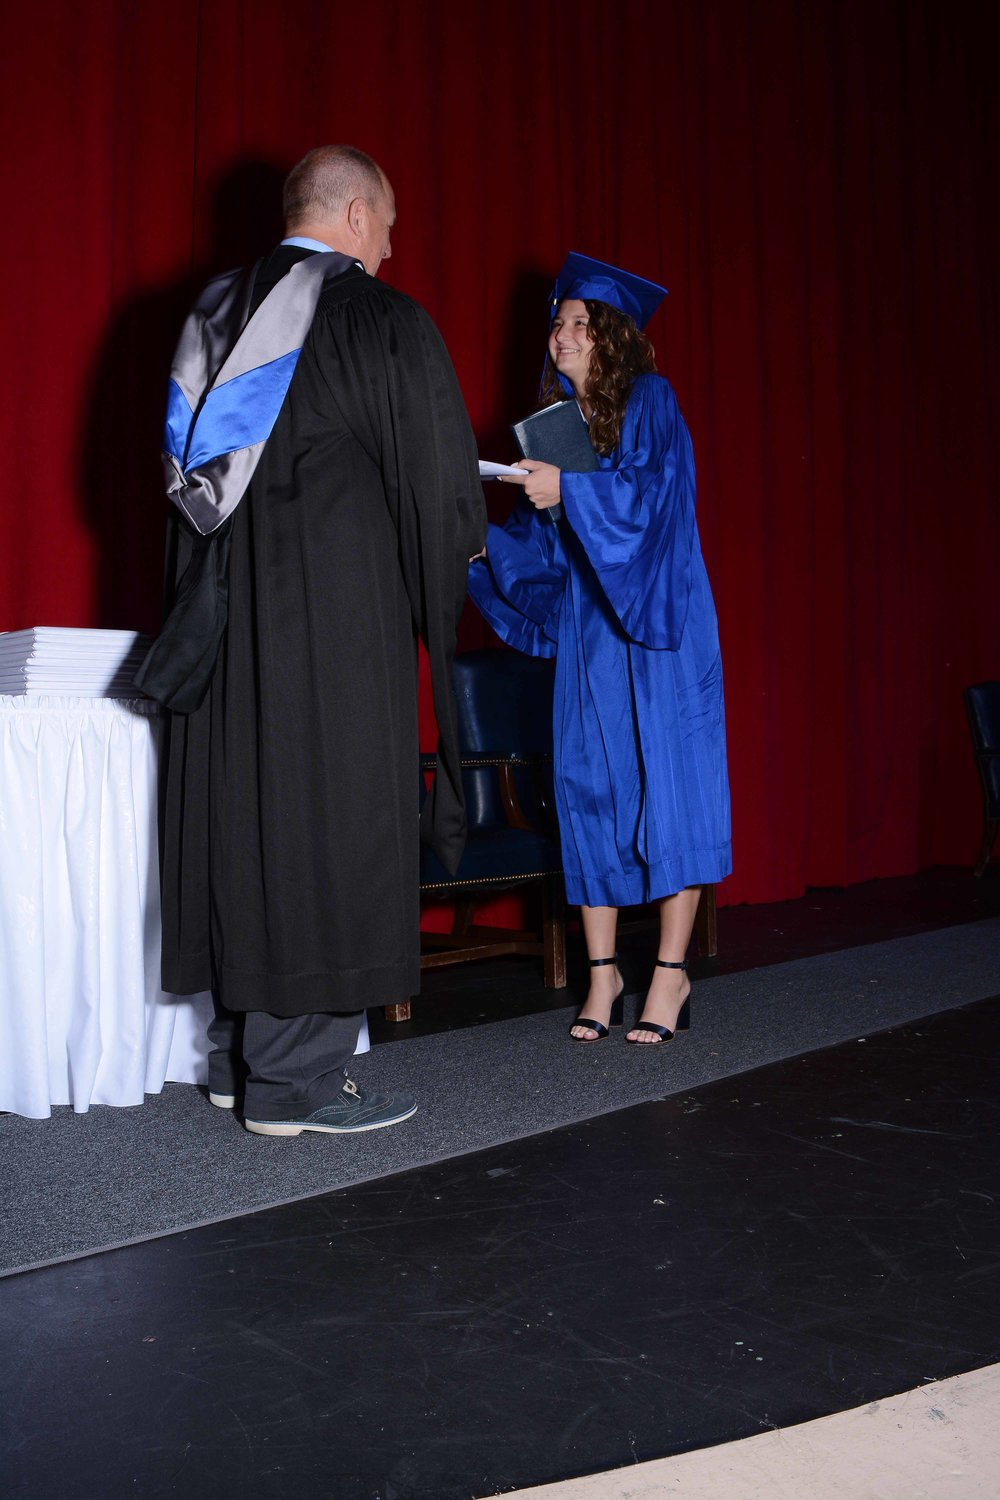 May14 Commencement06.jpg